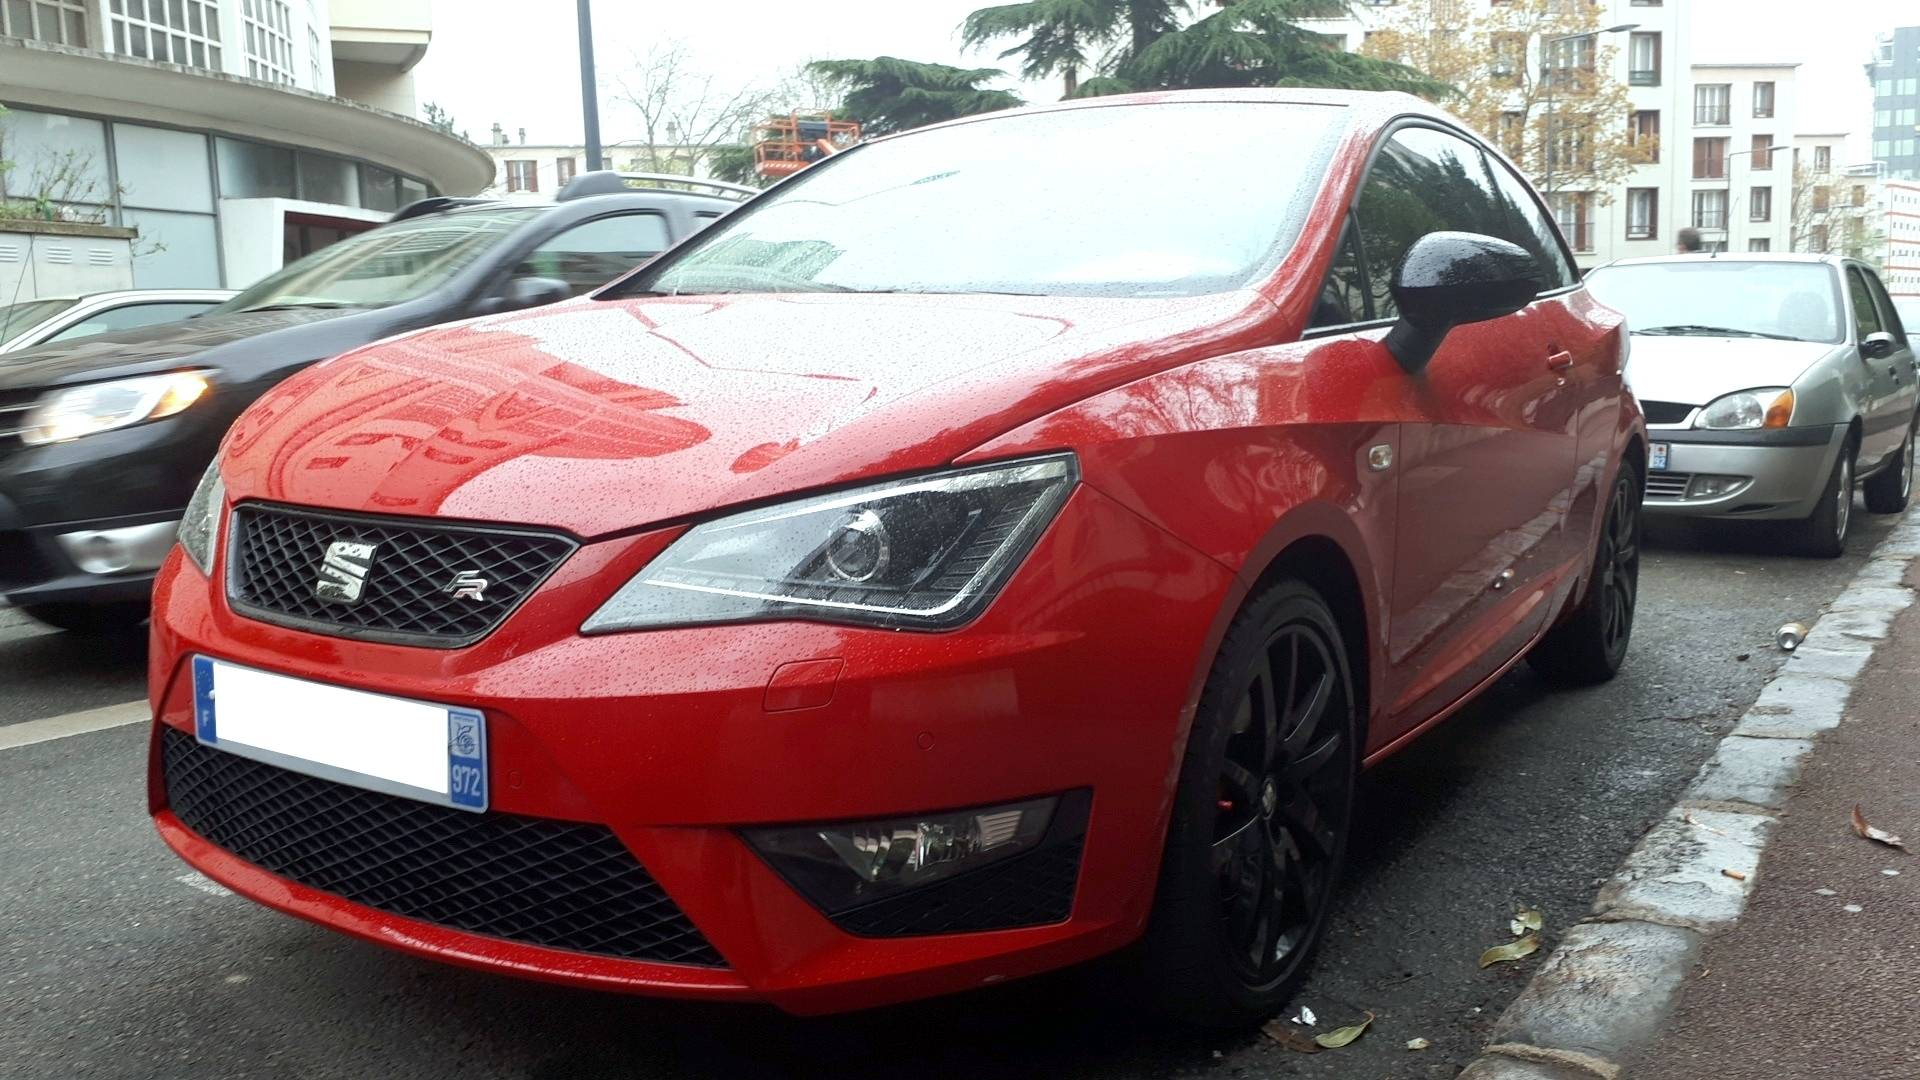 seat ibiza d 39 occasion sc 1 4 tsi 140 act fr cachan cedex carizy. Black Bedroom Furniture Sets. Home Design Ideas